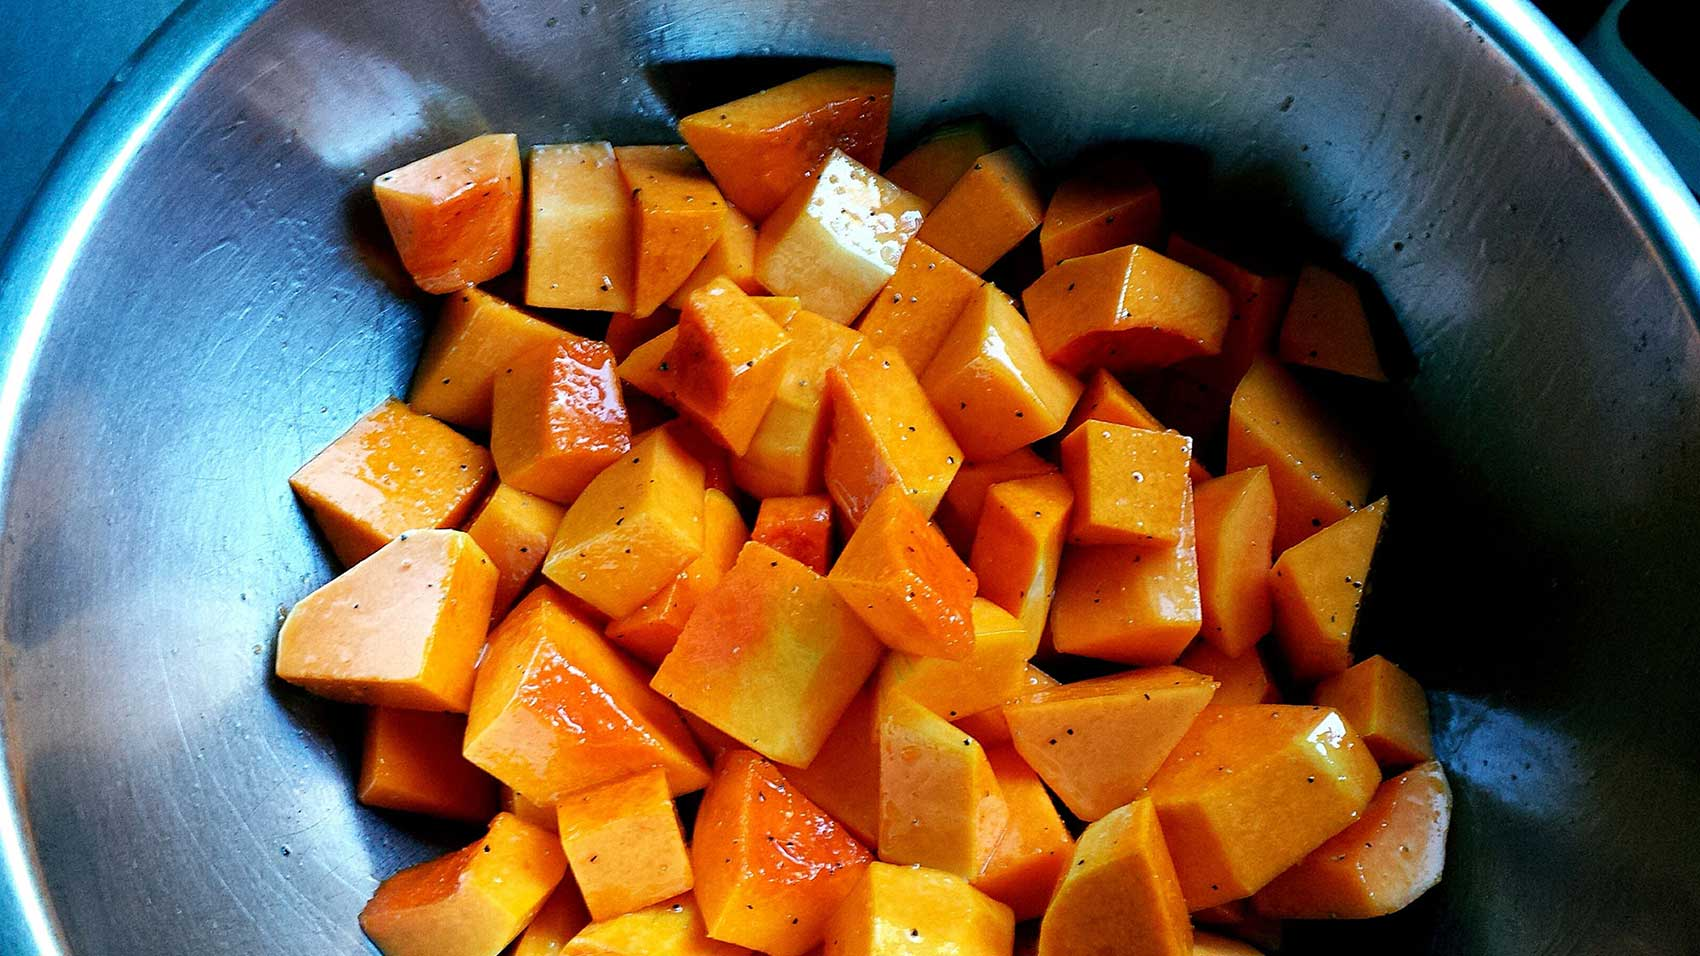 How long to cook butternut squash on stovetop